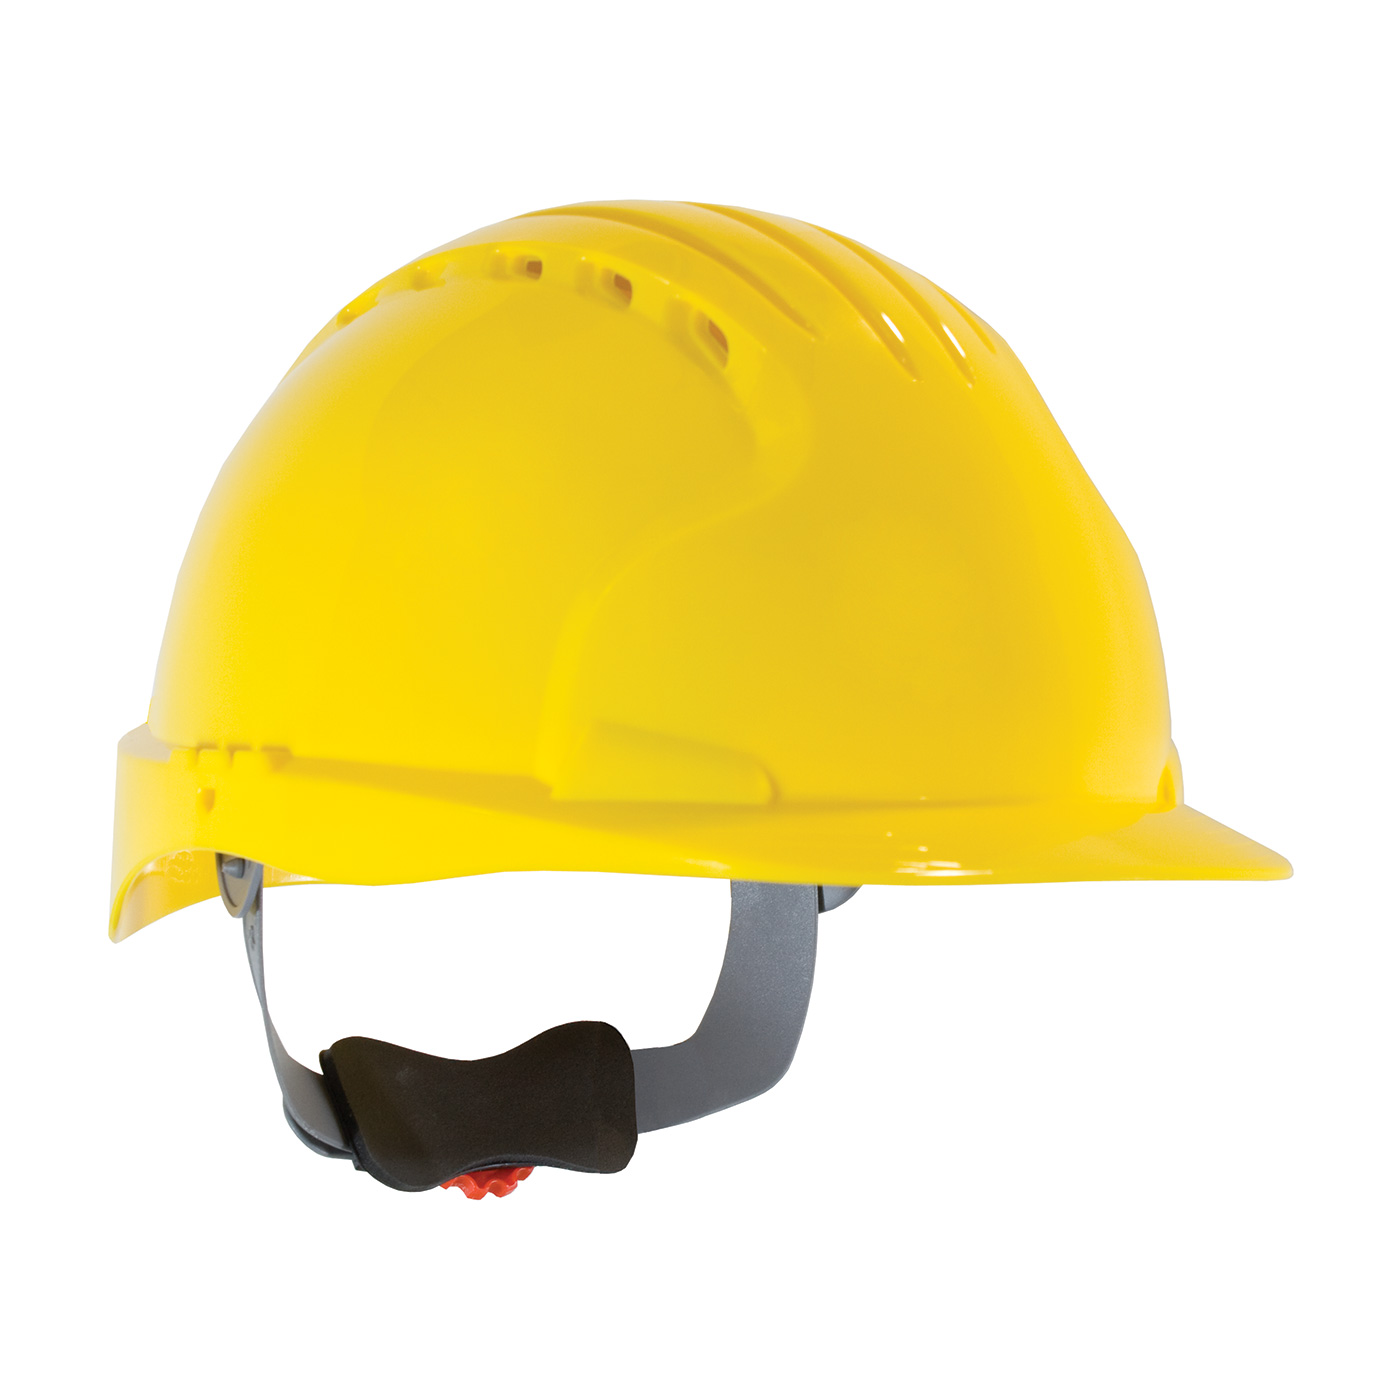 280-EV6151V PIP® JSP® Evolution® Deluxe 6151 Standard Brim, Vented Hard Hat with HDPE Shell, 6-Point Polyester Suspension and Wheel Ratchet Adjustment - Yellow